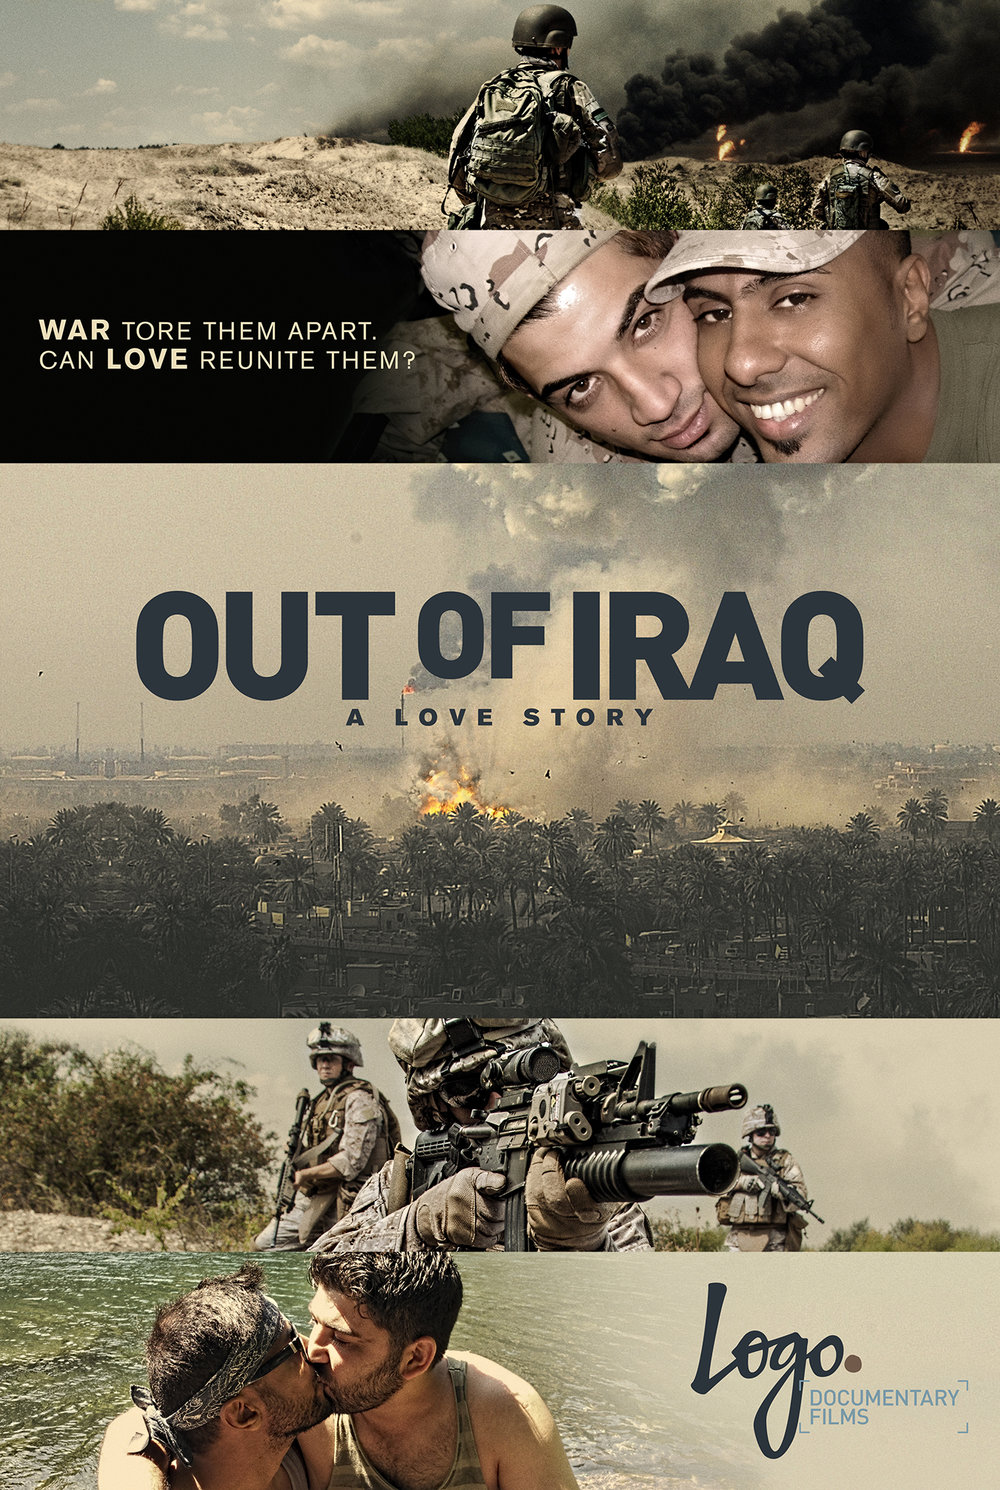 OUT OF IRAQ /  Two enlisted men in Iraq, one an Iraqi solider, the other a translator are forced to flee when one is being targeted for homosexuality. Through thousands of miles, they fight to stay connected and to be reunited. Poster Design by The Refinery.